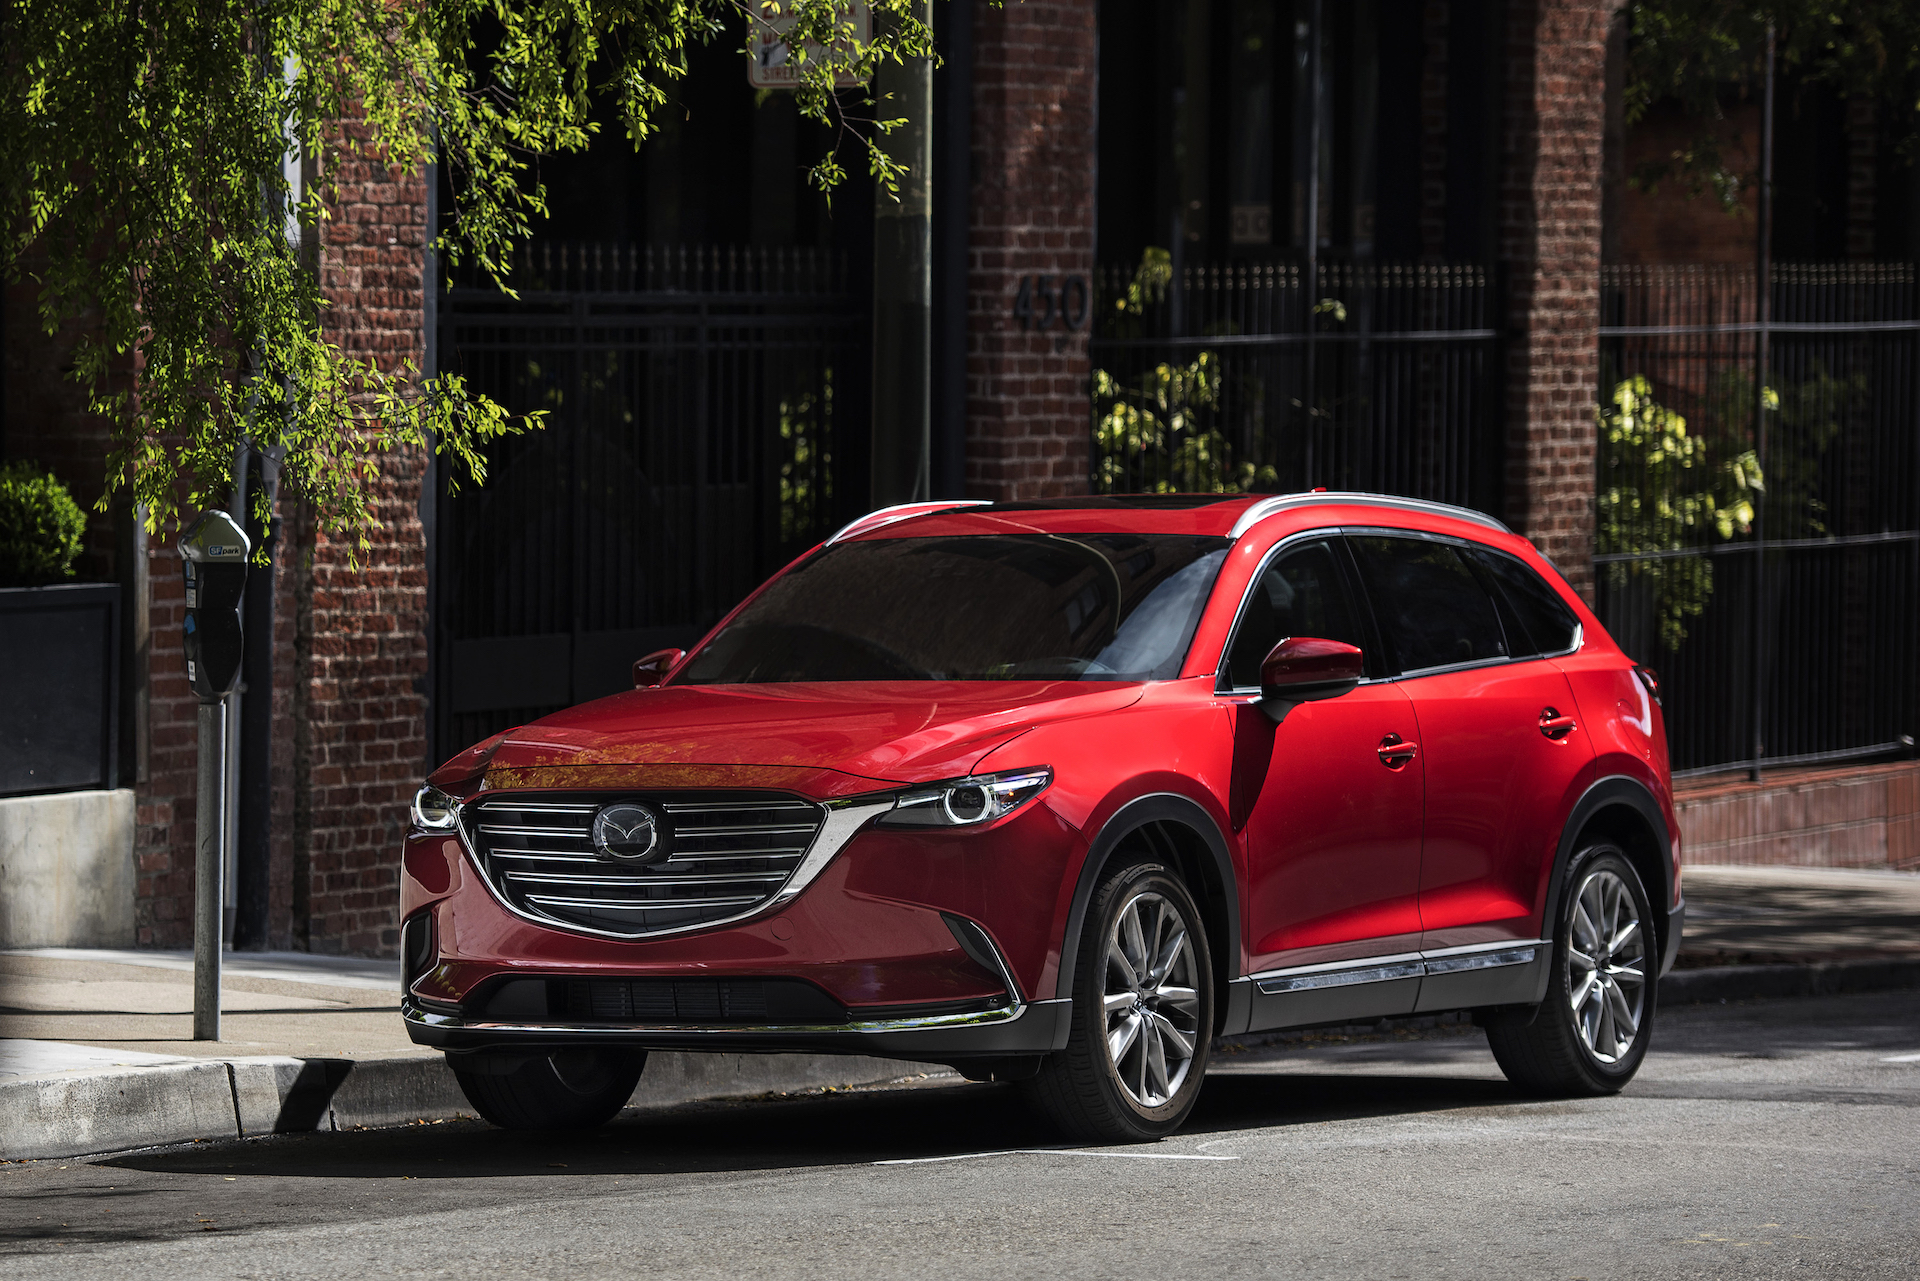 cx suv pr ah turbocharged review drive cars reports first f consumer driving the mazda